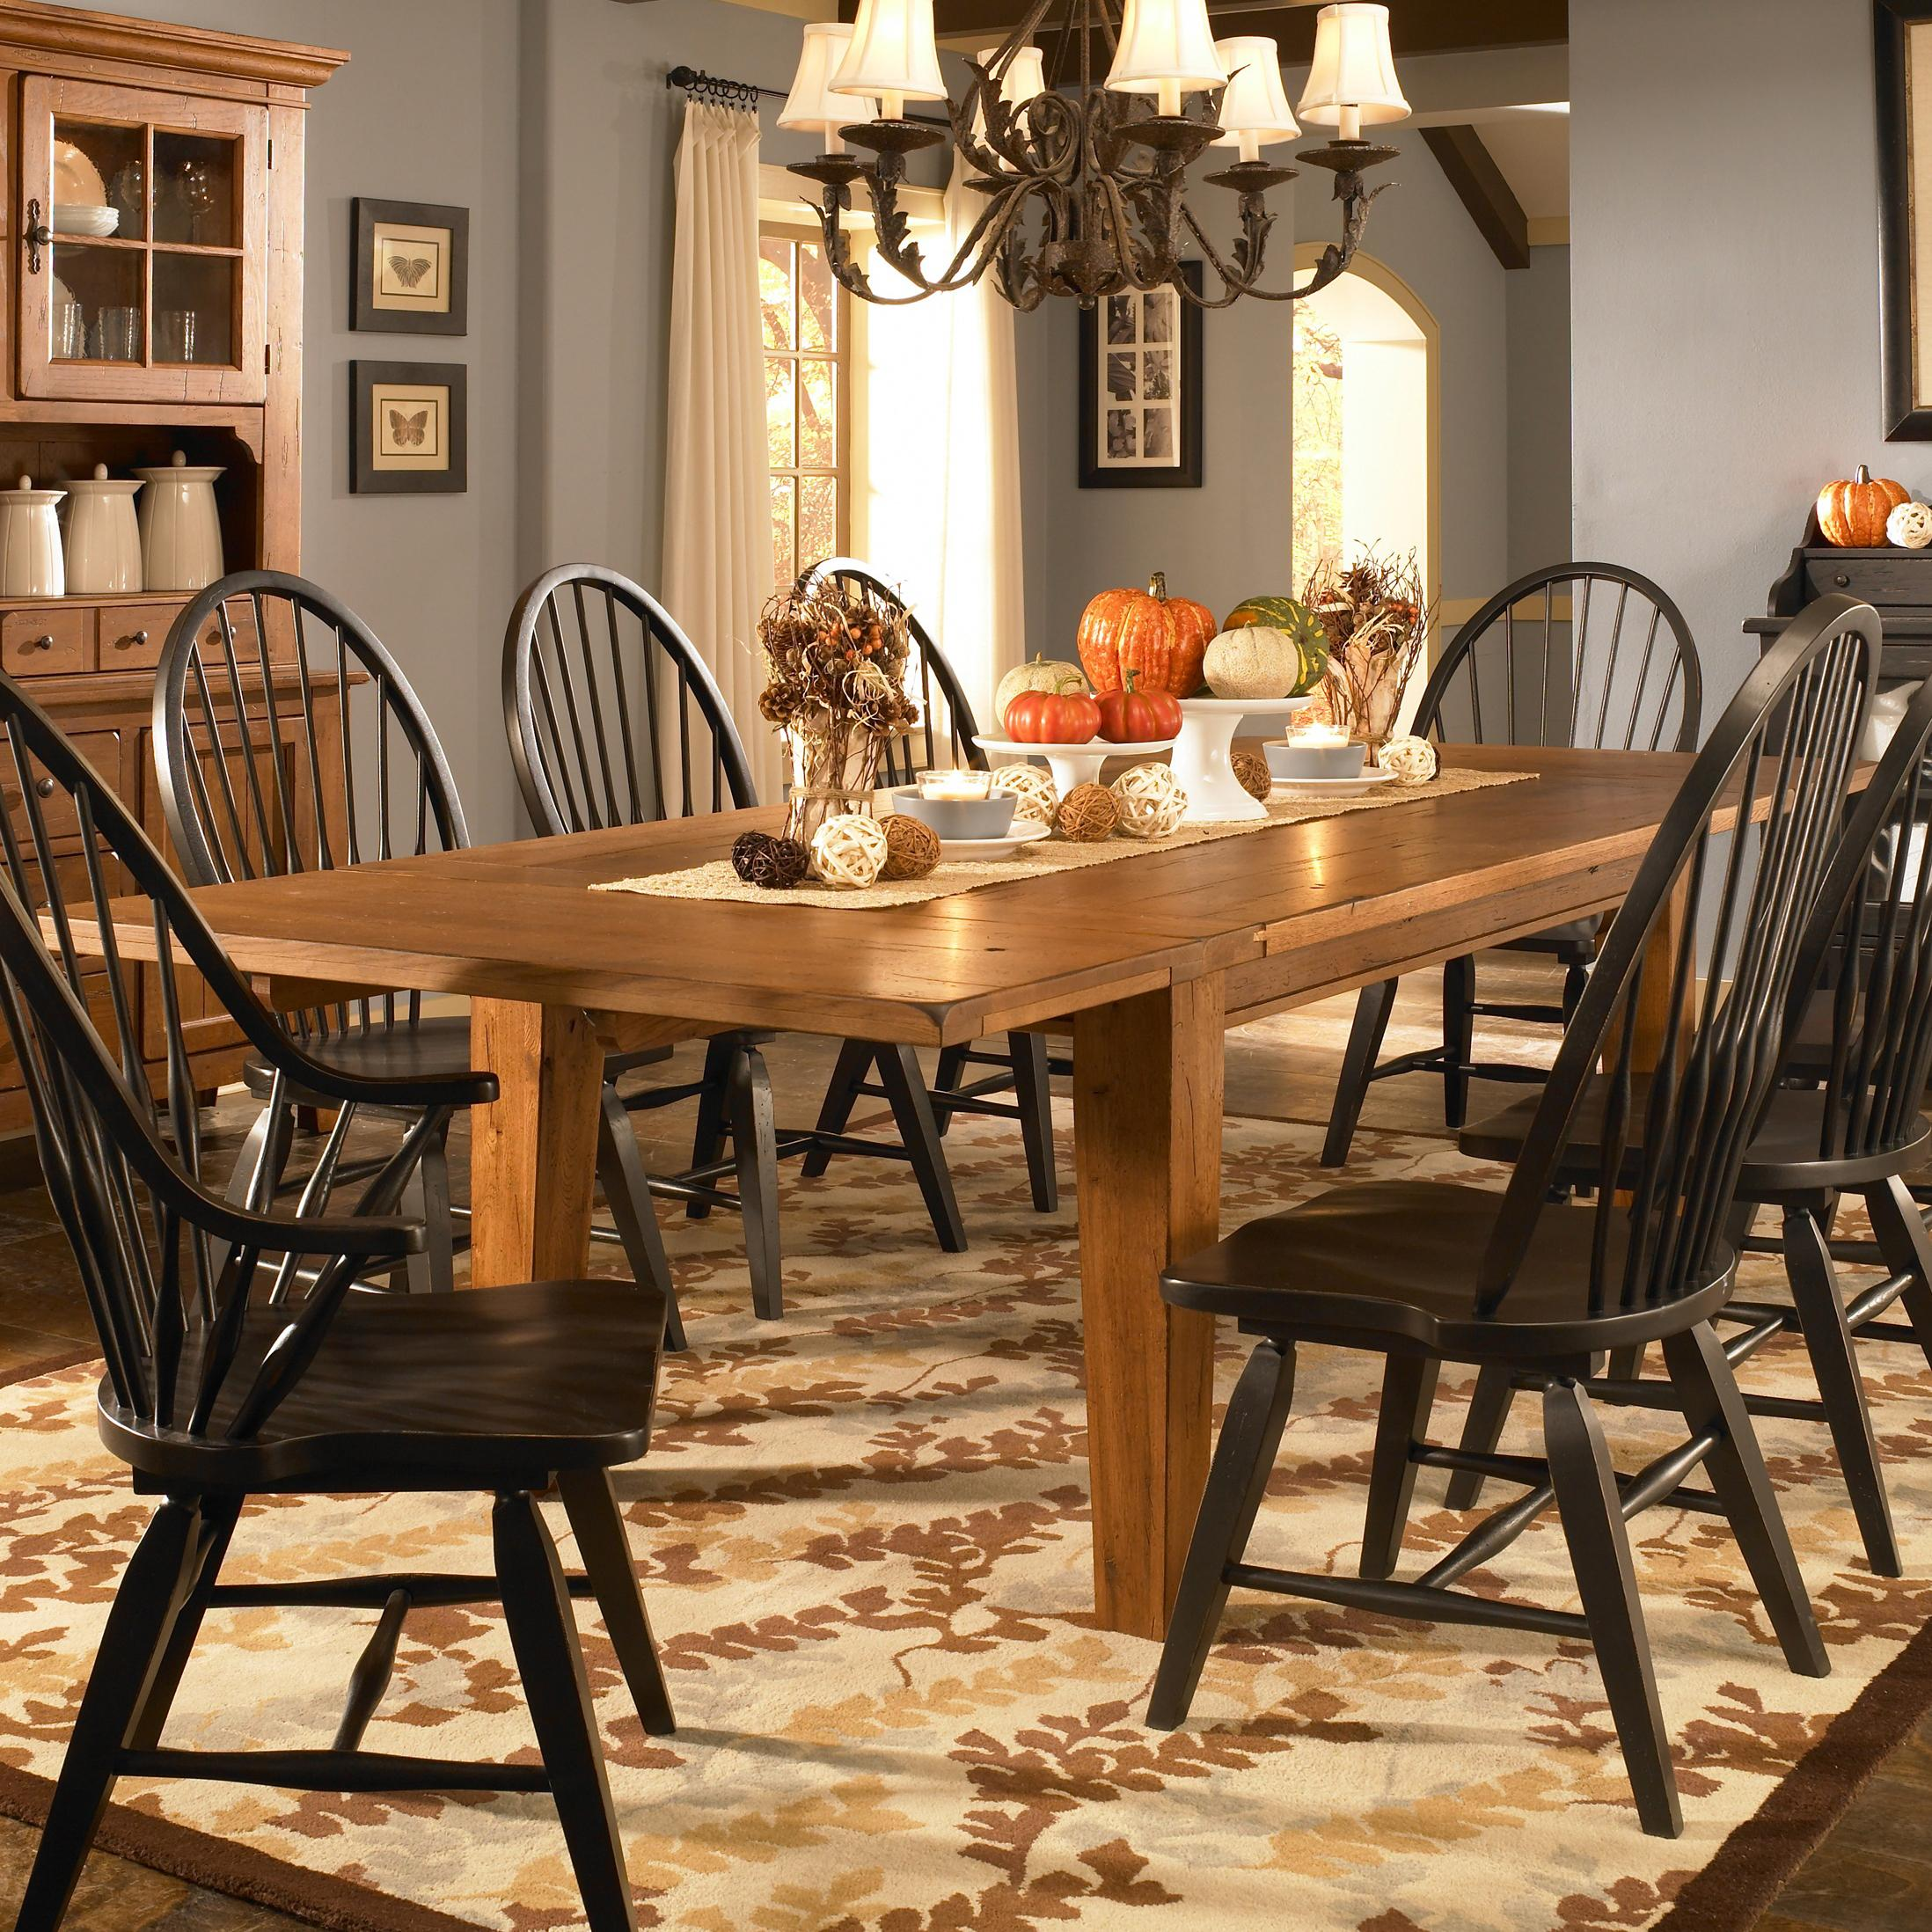 Leg dining table with leaves by broyhill furniture wolf and leg dining table with leaves workwithnaturefo